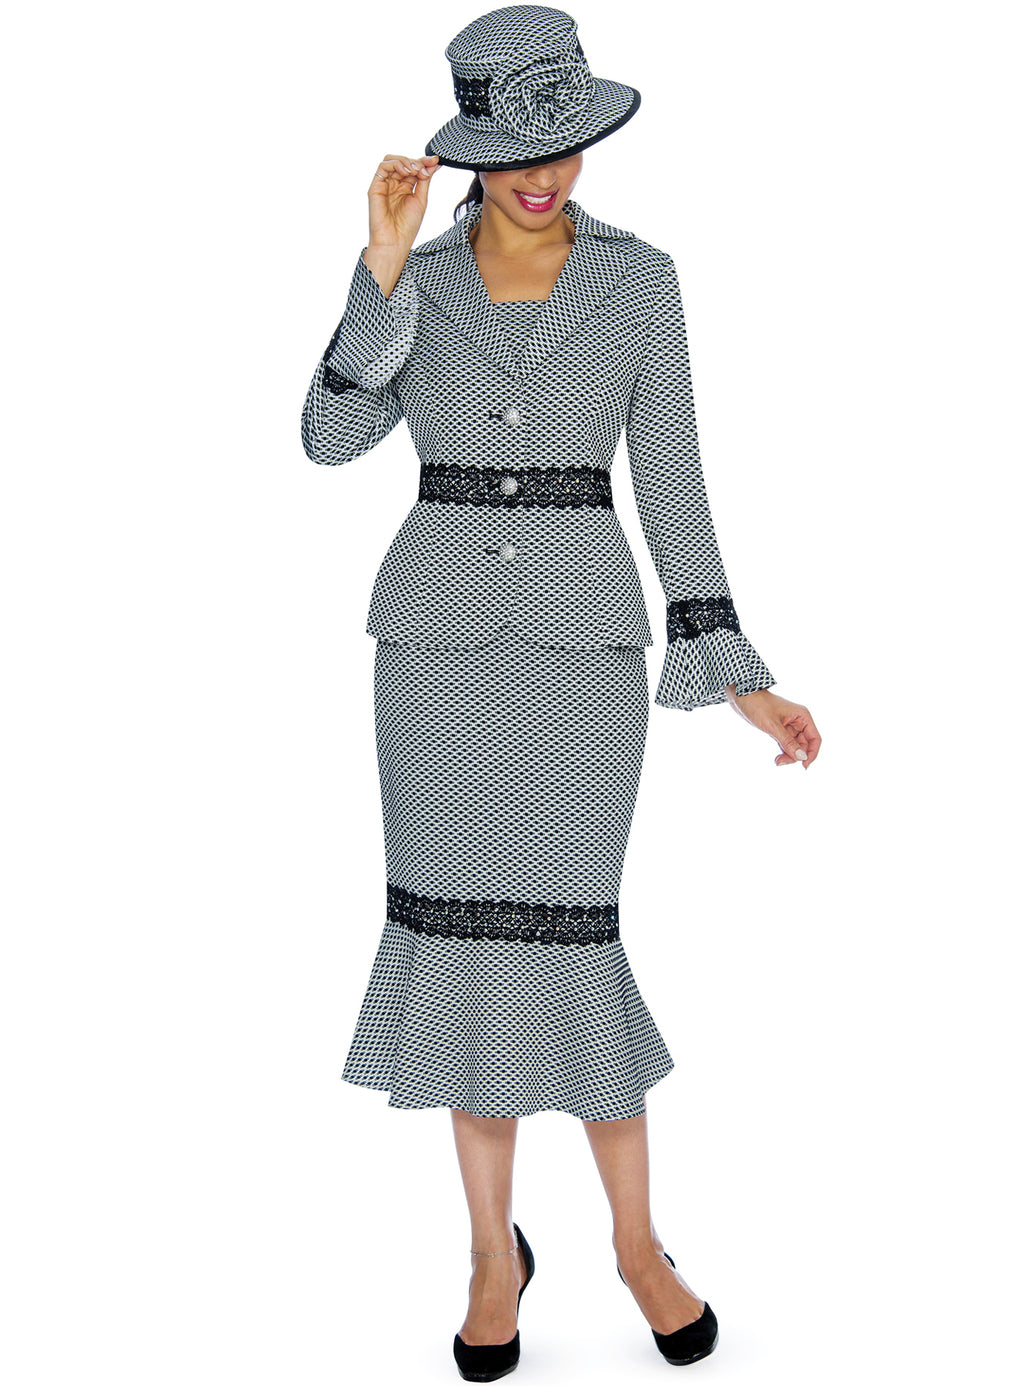 Dot Pattern Lace Appliqué Suit 0910